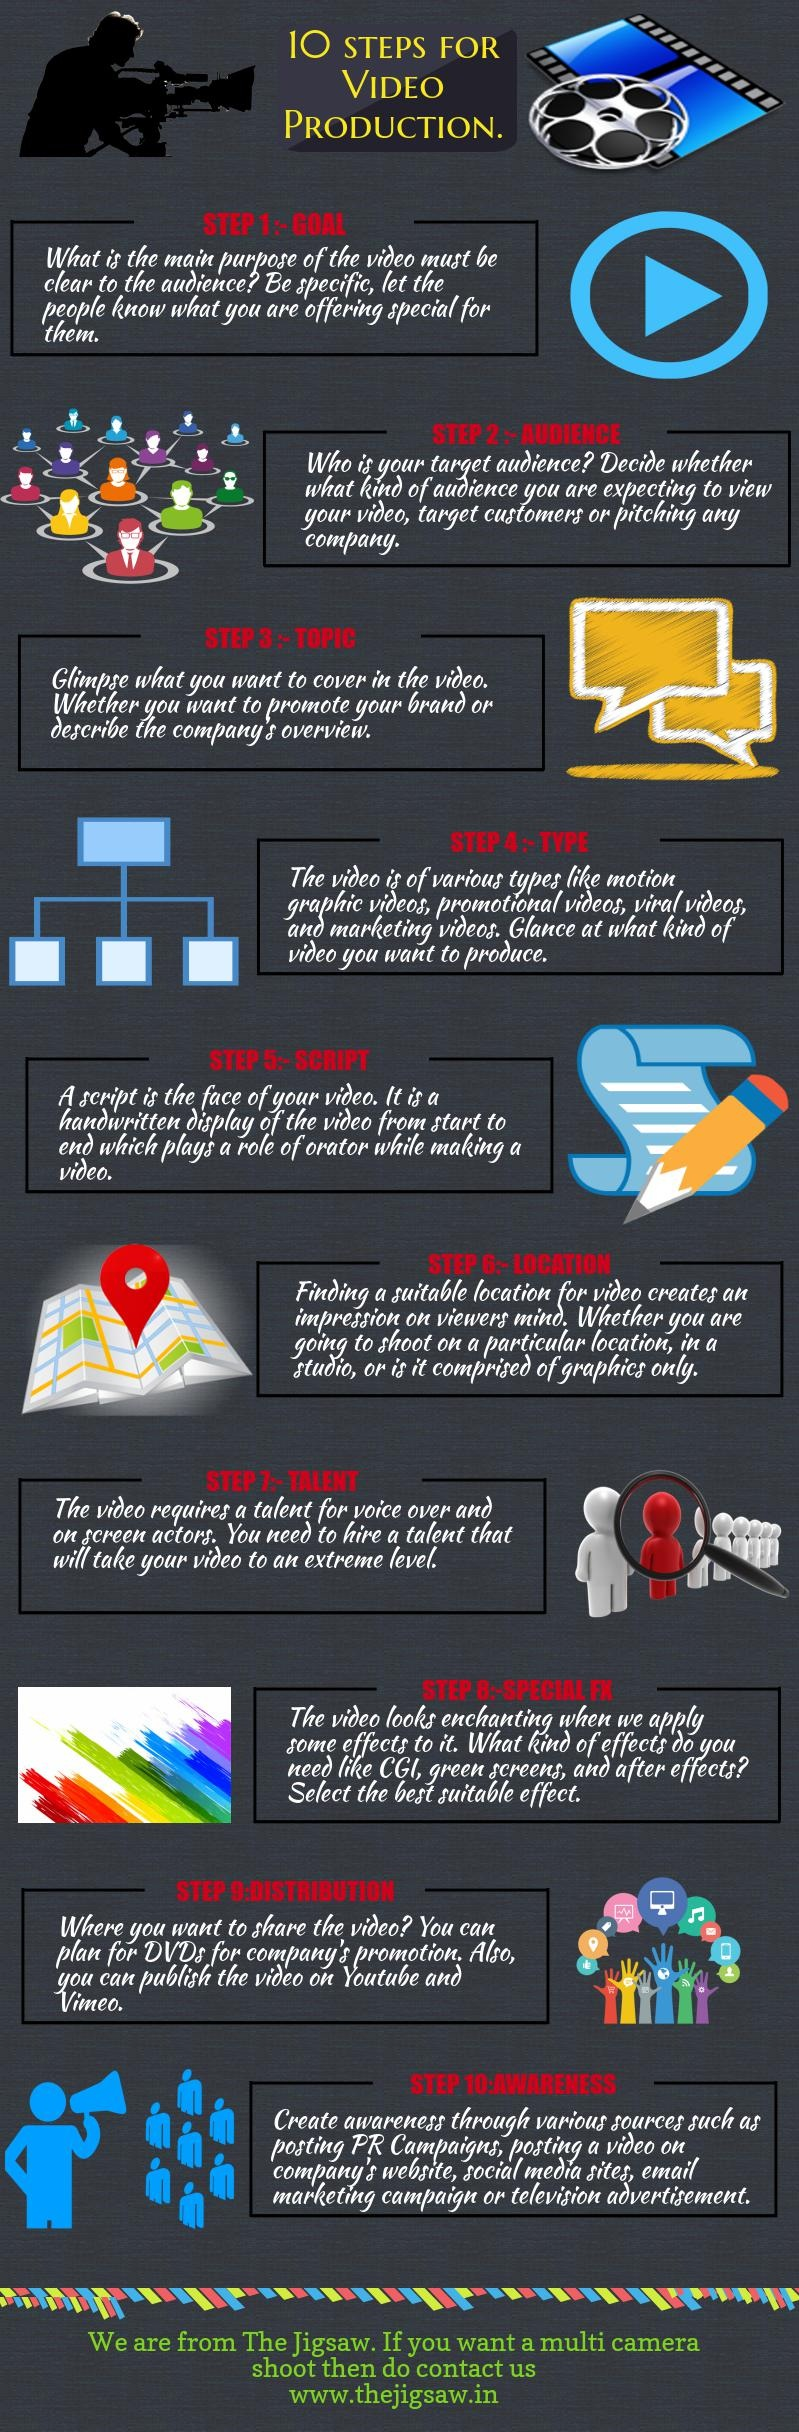 10 steps for Video Production.